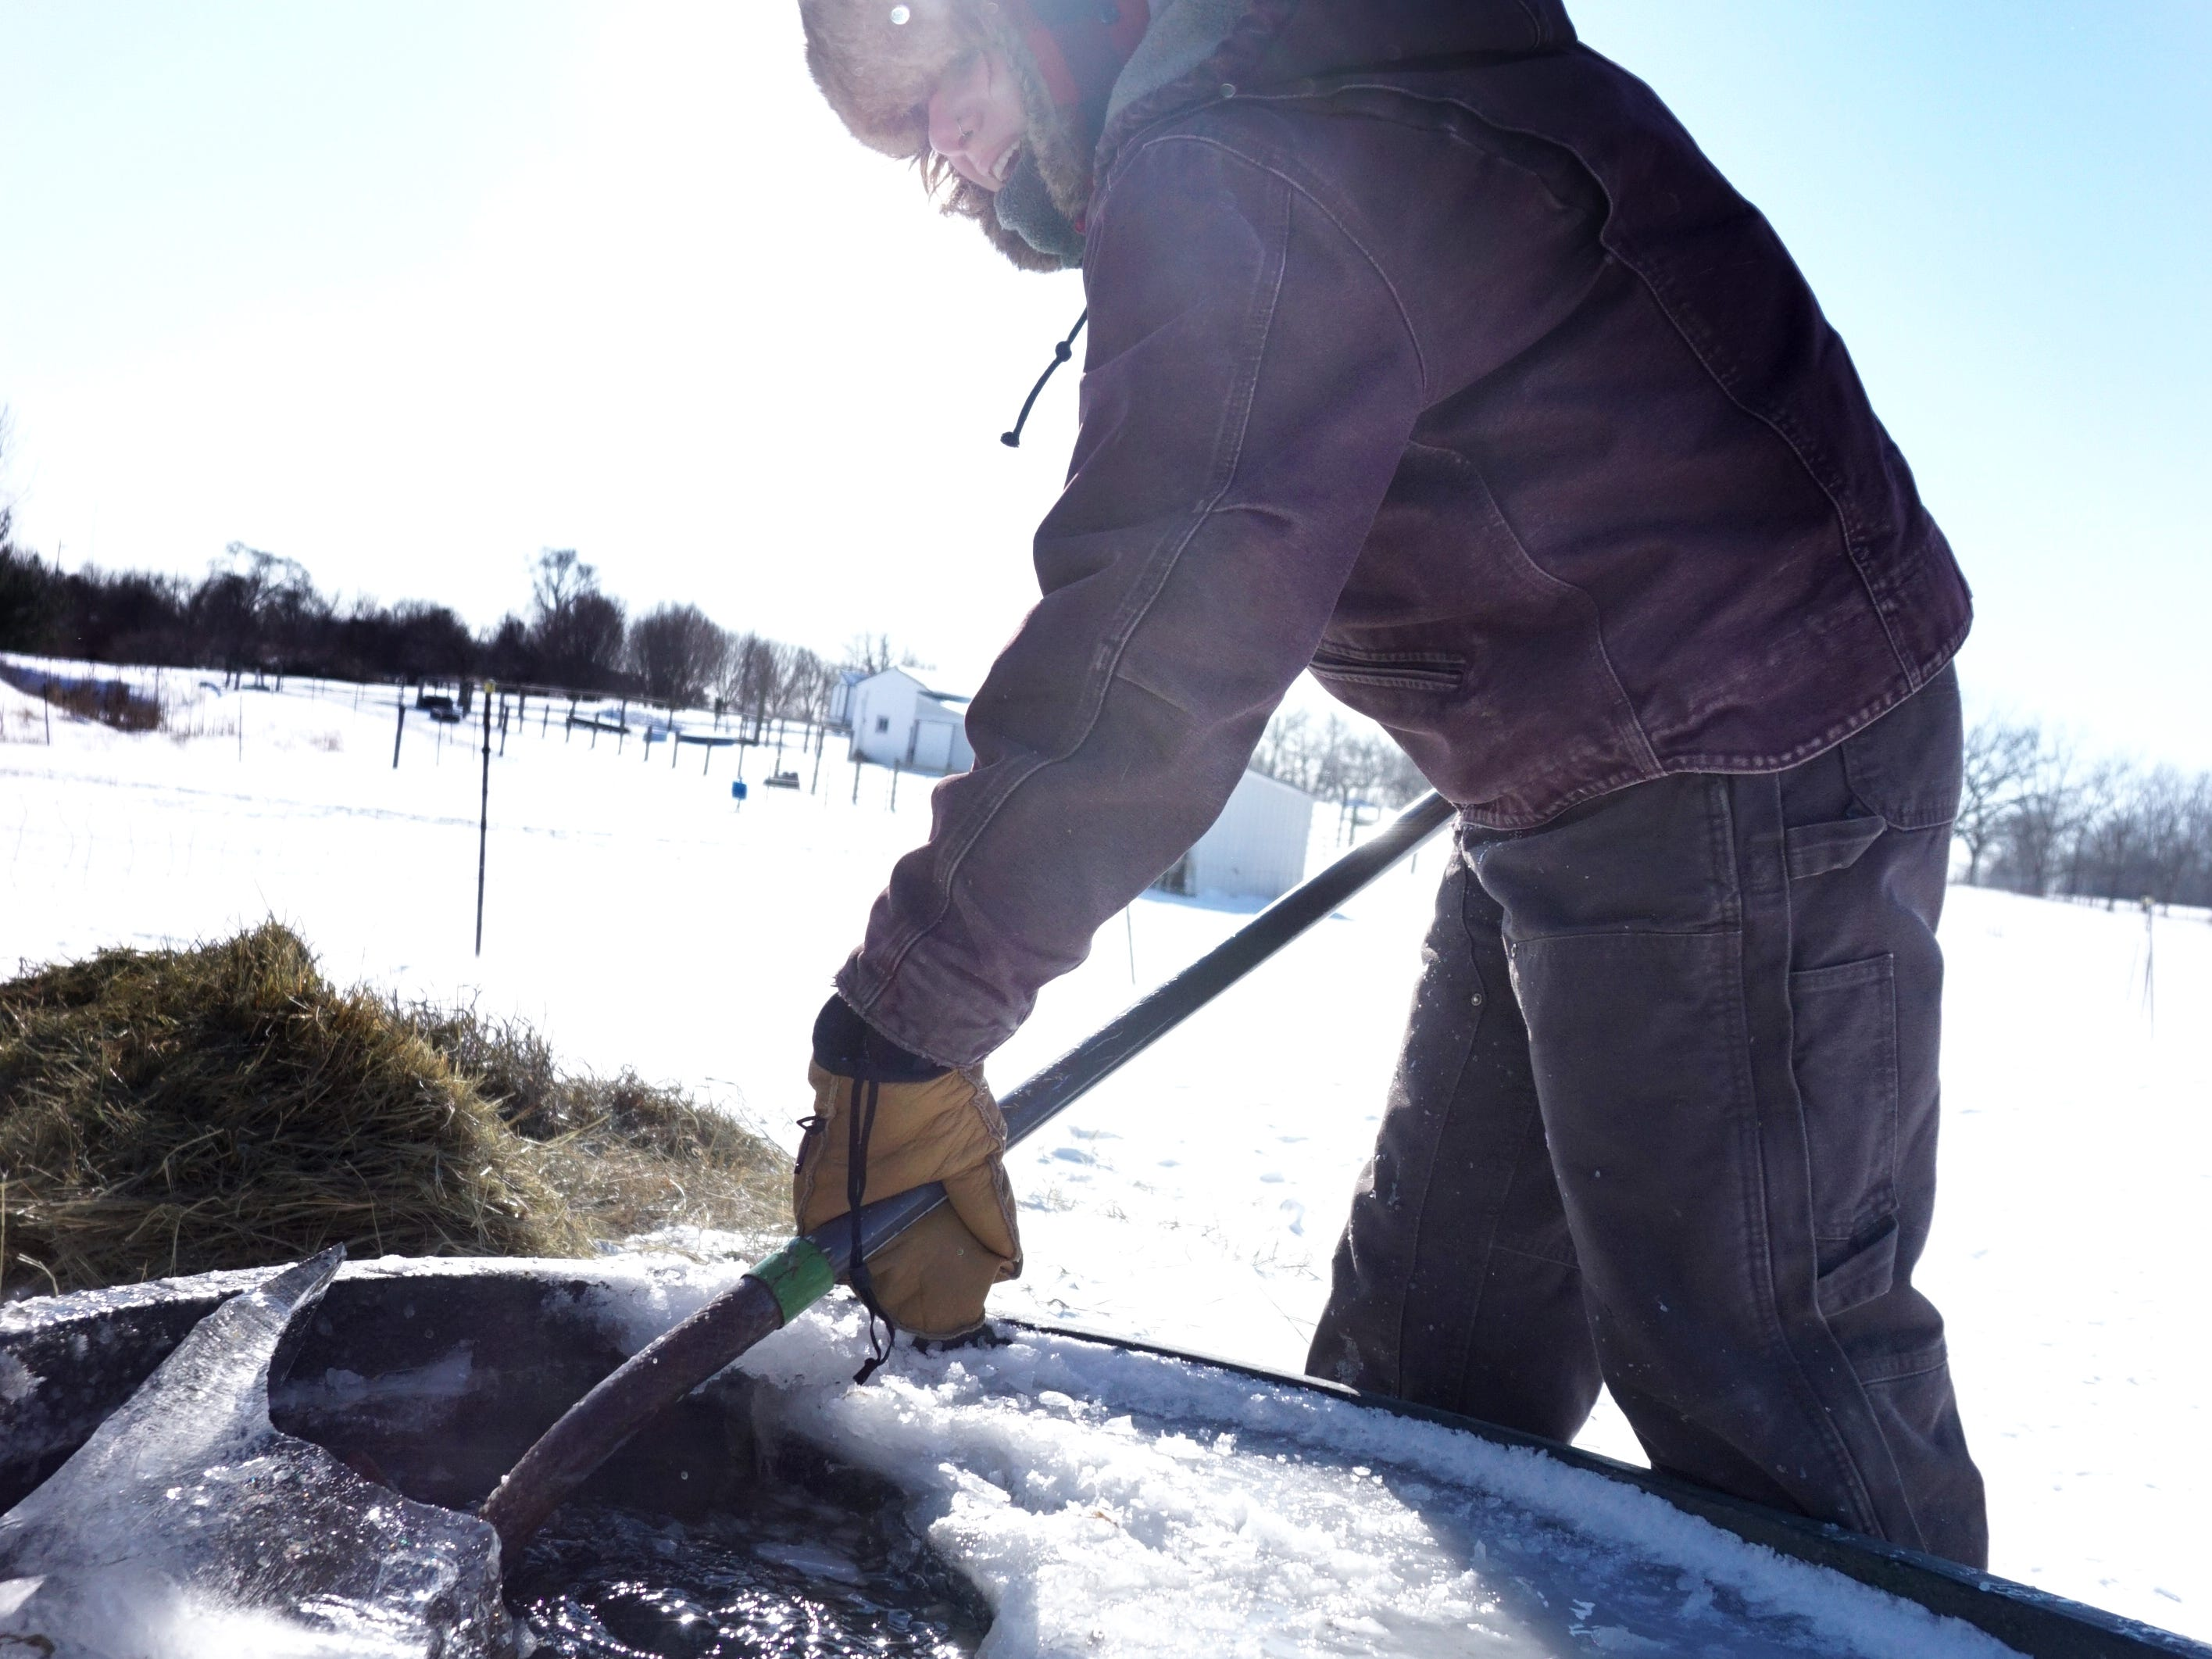 Tollgate Farms livestock manager Sam Stokes breaks up ice on an outdoor water trough at the MSU educational center in Novi on Jan. 30. Stokes was outside a few times that day to make sure animals had enough hay and water to keep them going in the extreme cold. At the time this photo was taken it was about 1 degree above zero with a wind chill of minus 20 degrees below zero.